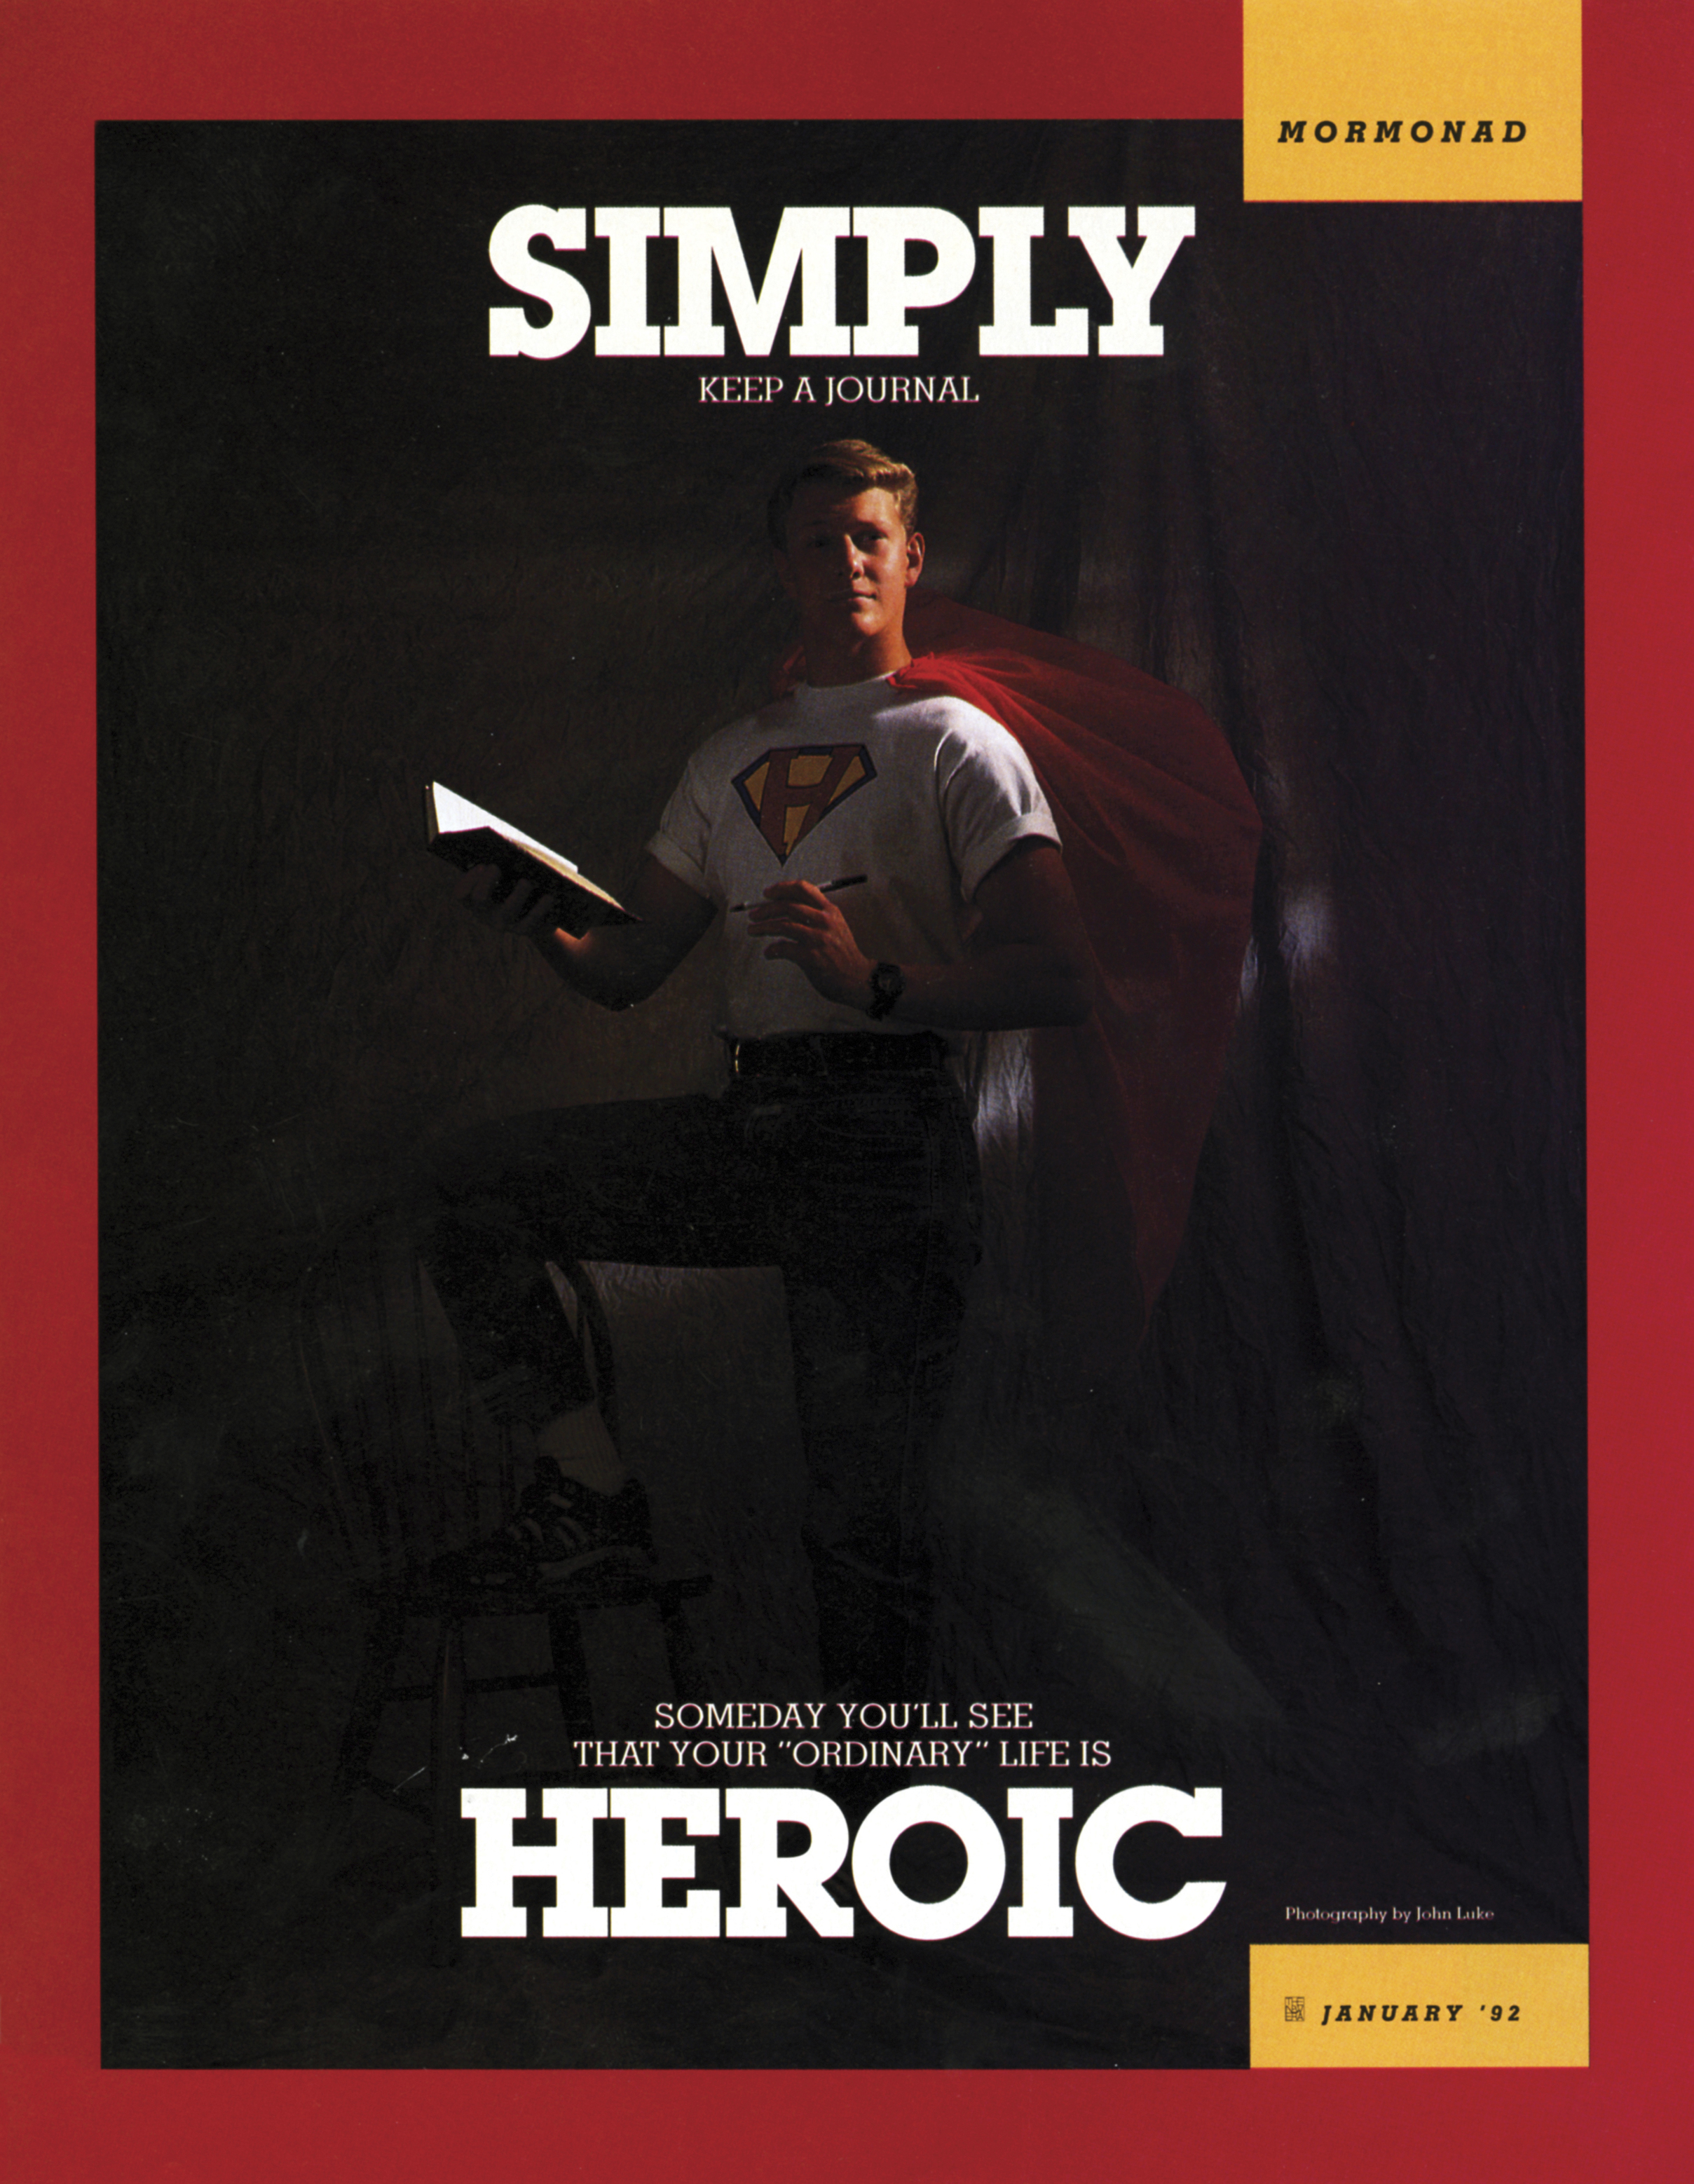 """Simply keep a journal. Someday You'll see that your """"ordinary"""" life is heroic. Jan. 1992 © undefined ipCode 1."""